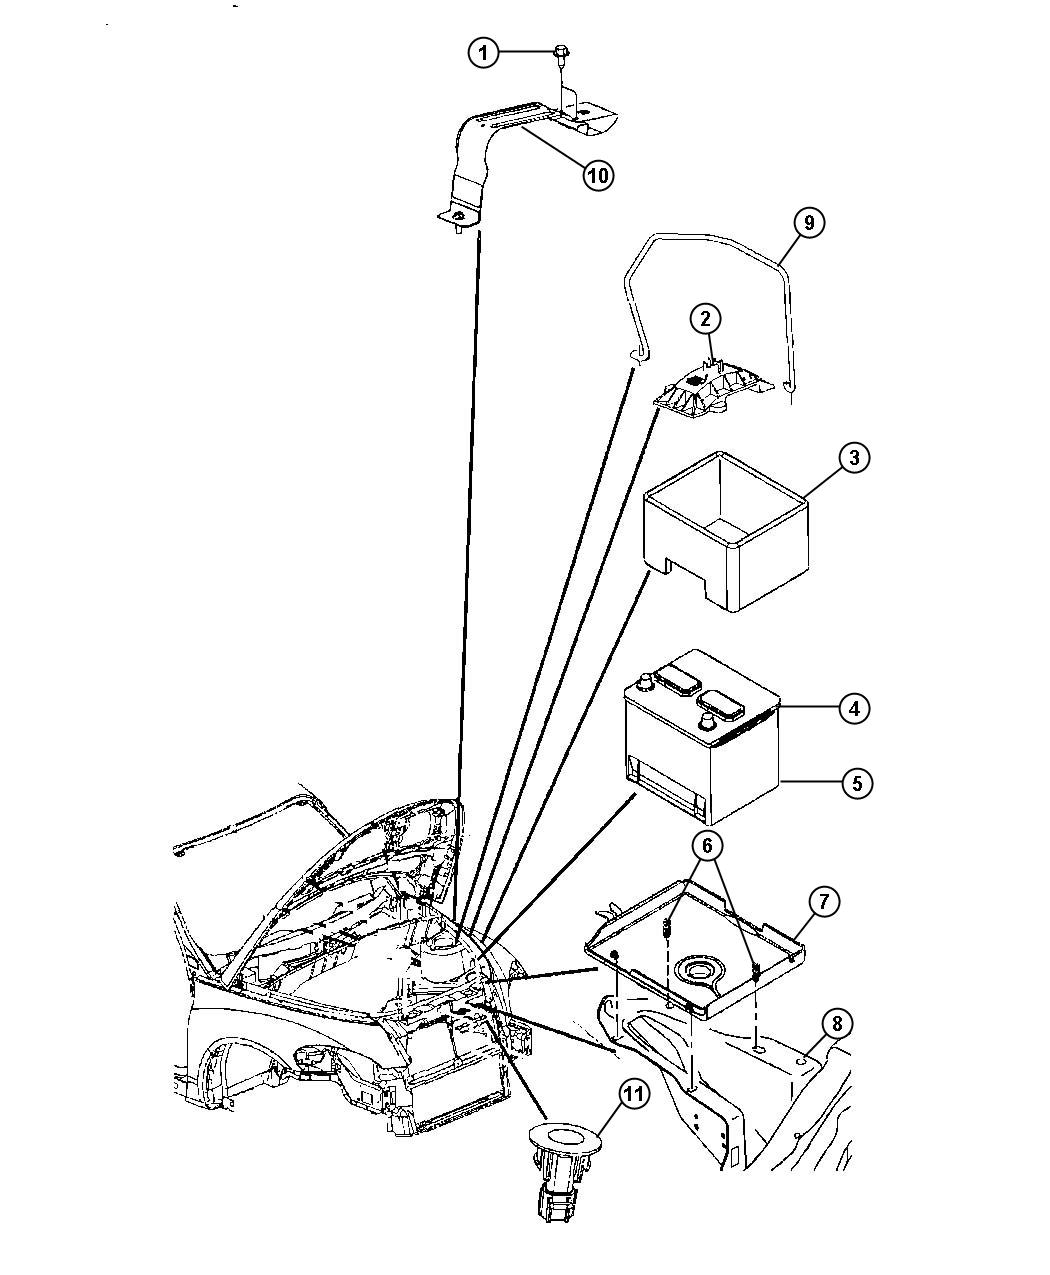 Pt Cruiser Battery Tray And Support